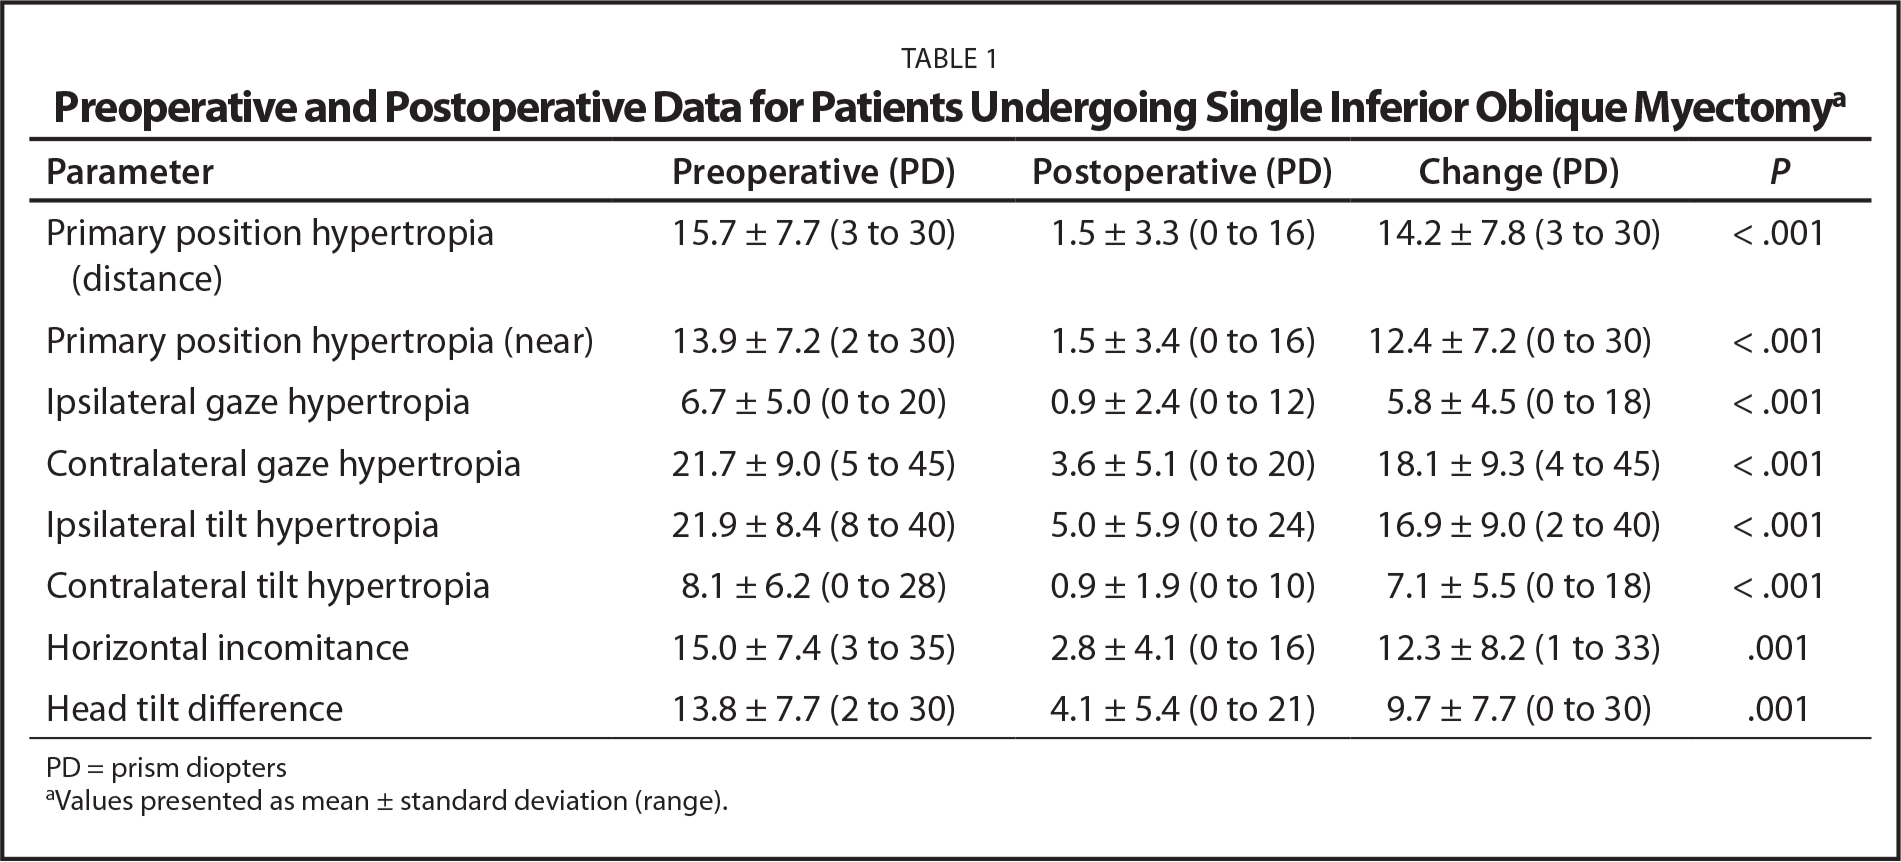 Preoperative and Postoperative Data for Patients Undergoing Single Inferior Oblique Myectomya